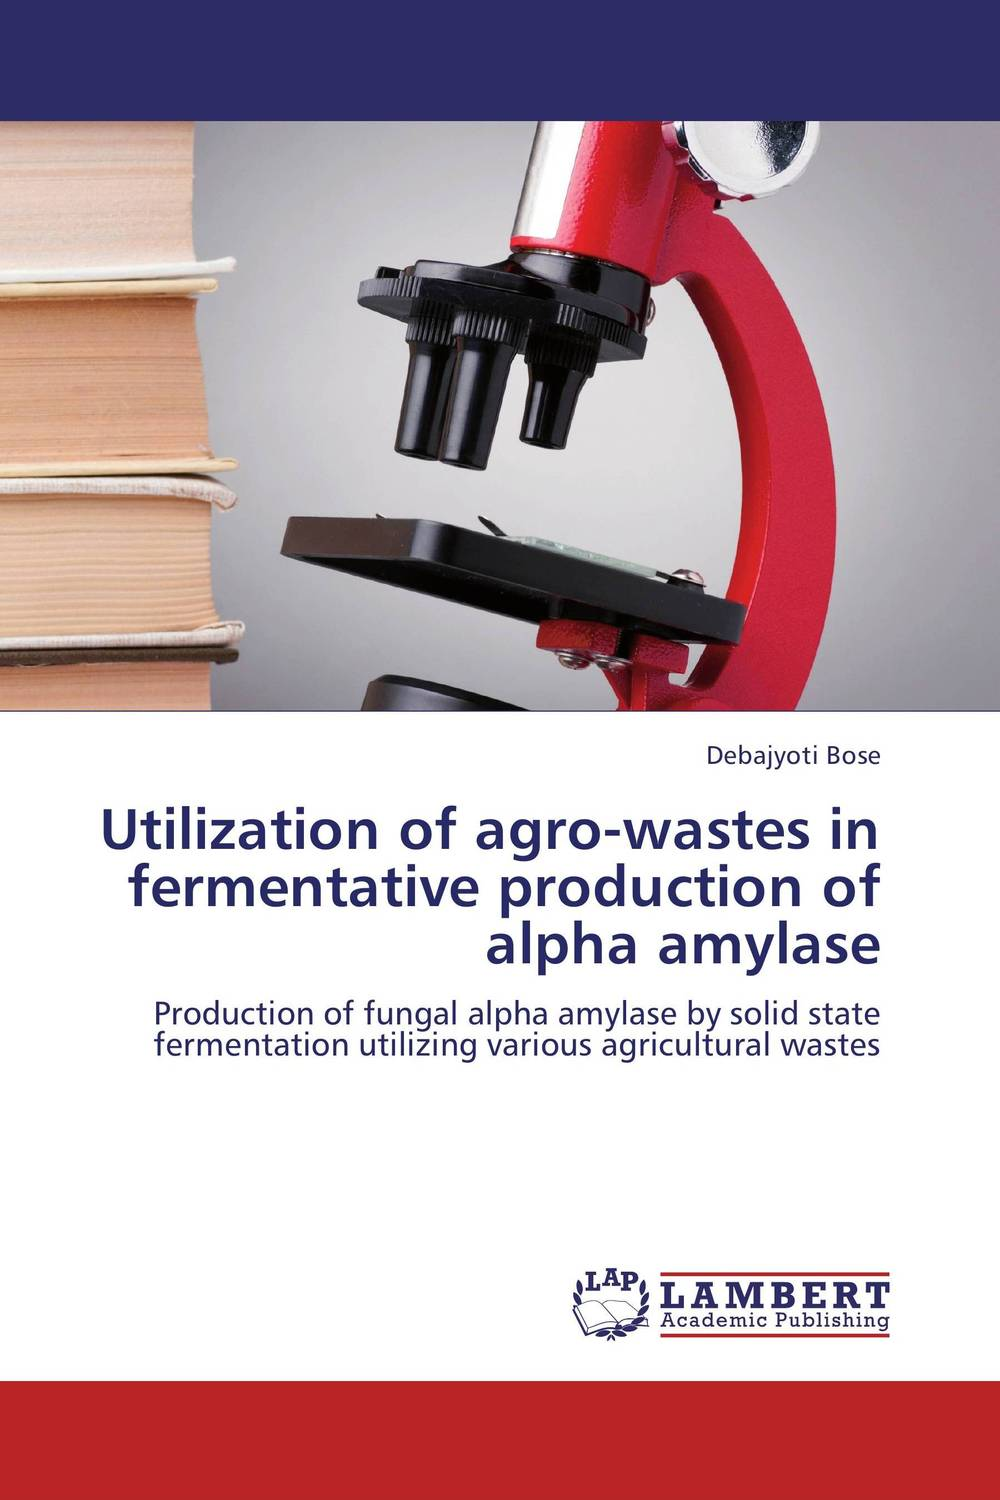 Utilization of agro-wastes in fermentative production of alpha amylase maushmi kumar and vikas verma lipstatin fermentative production